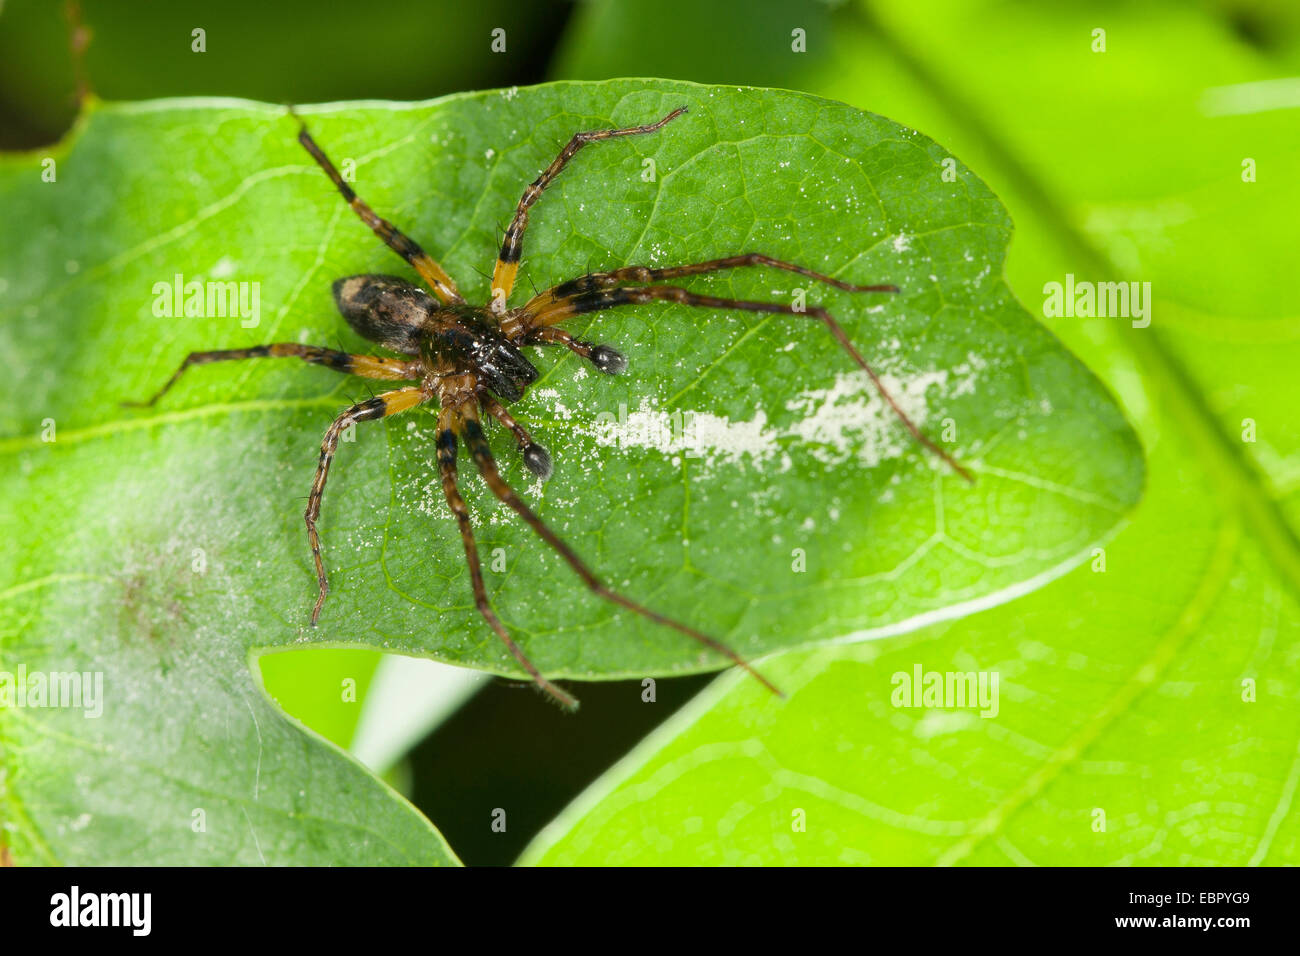 buzzing spider (Anyphaena accentuata), male, Germany - Stock Image